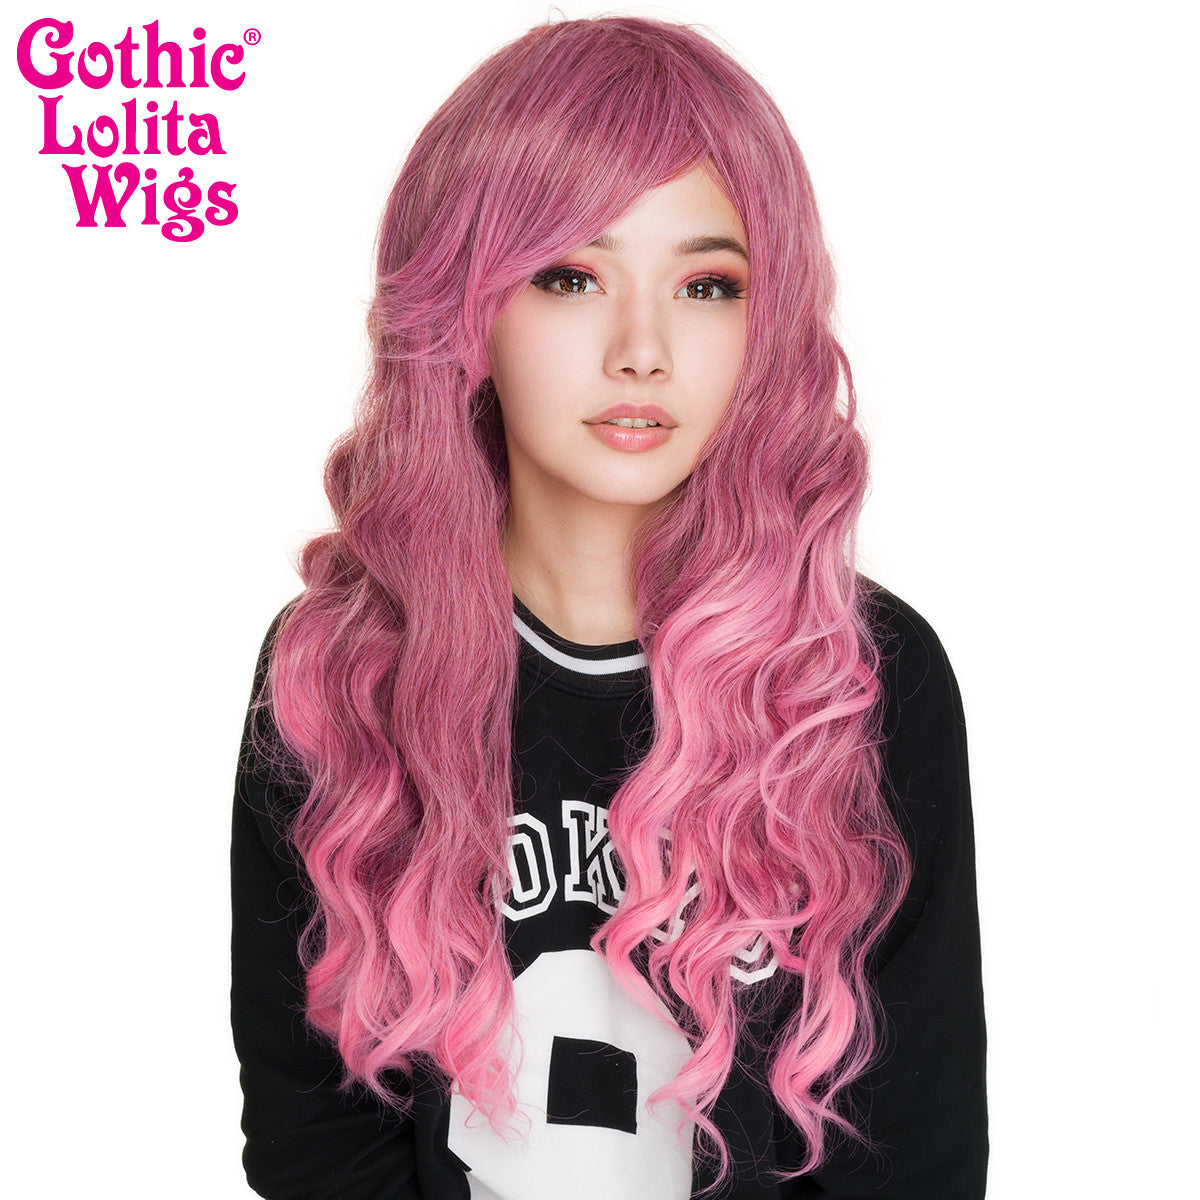 Gothic Lolita Wigs® <br> Classic Wavy Lolita™ Collection- Rose Fade -00610